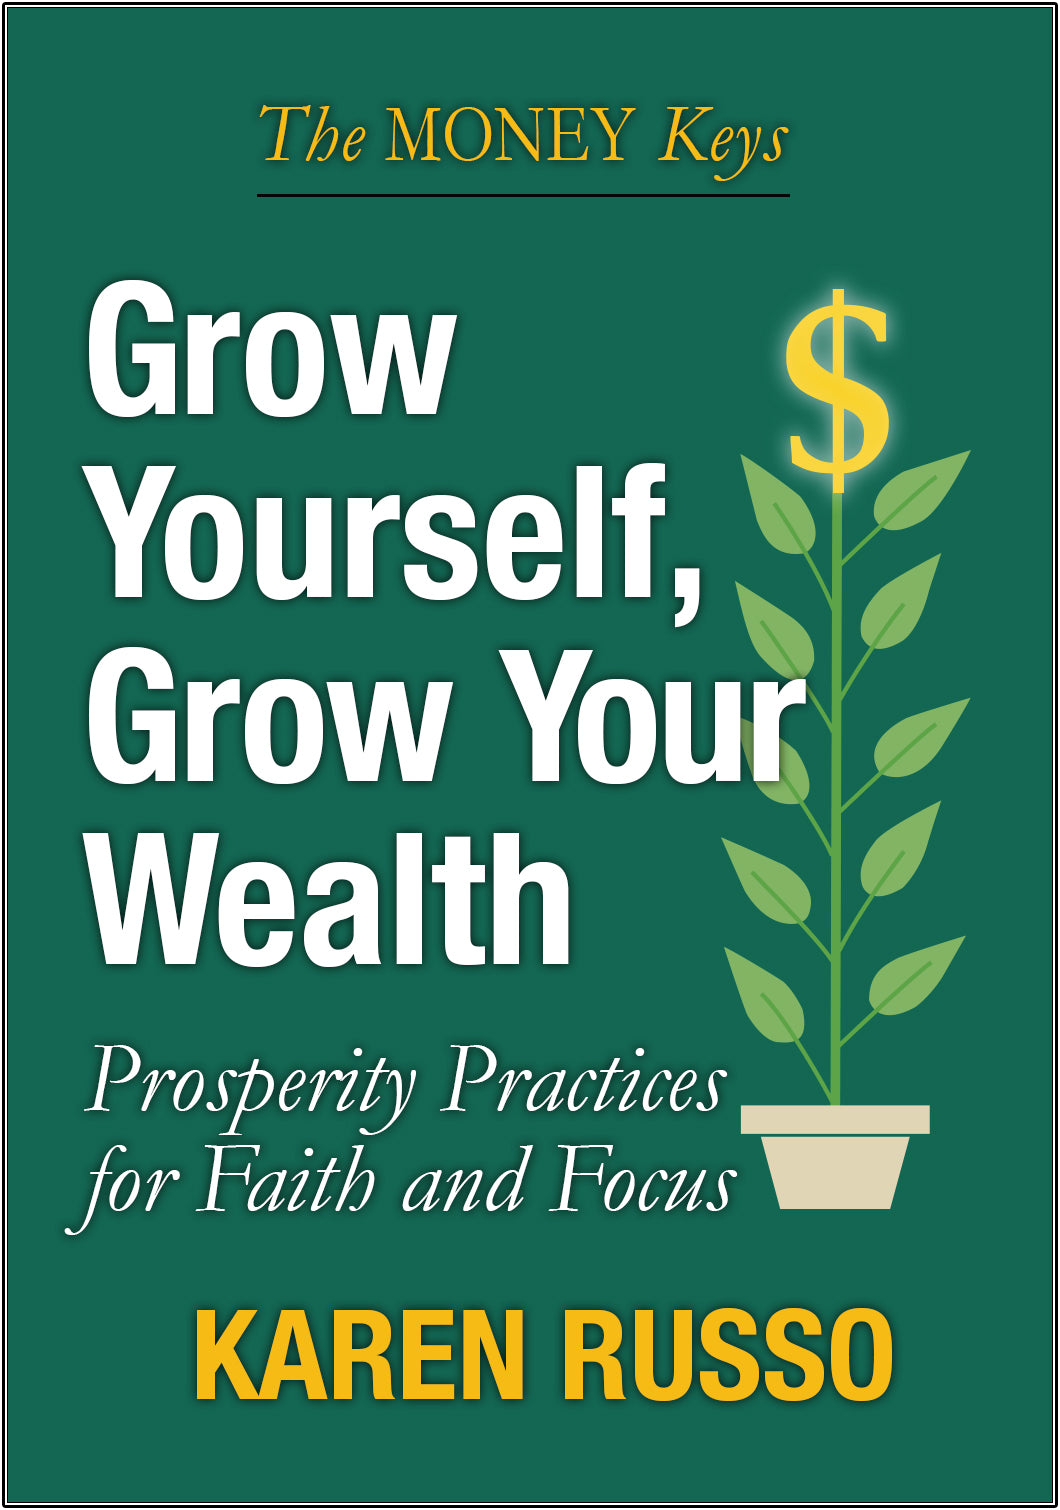 Grow Yourself, Grow Your Wealth mini-book